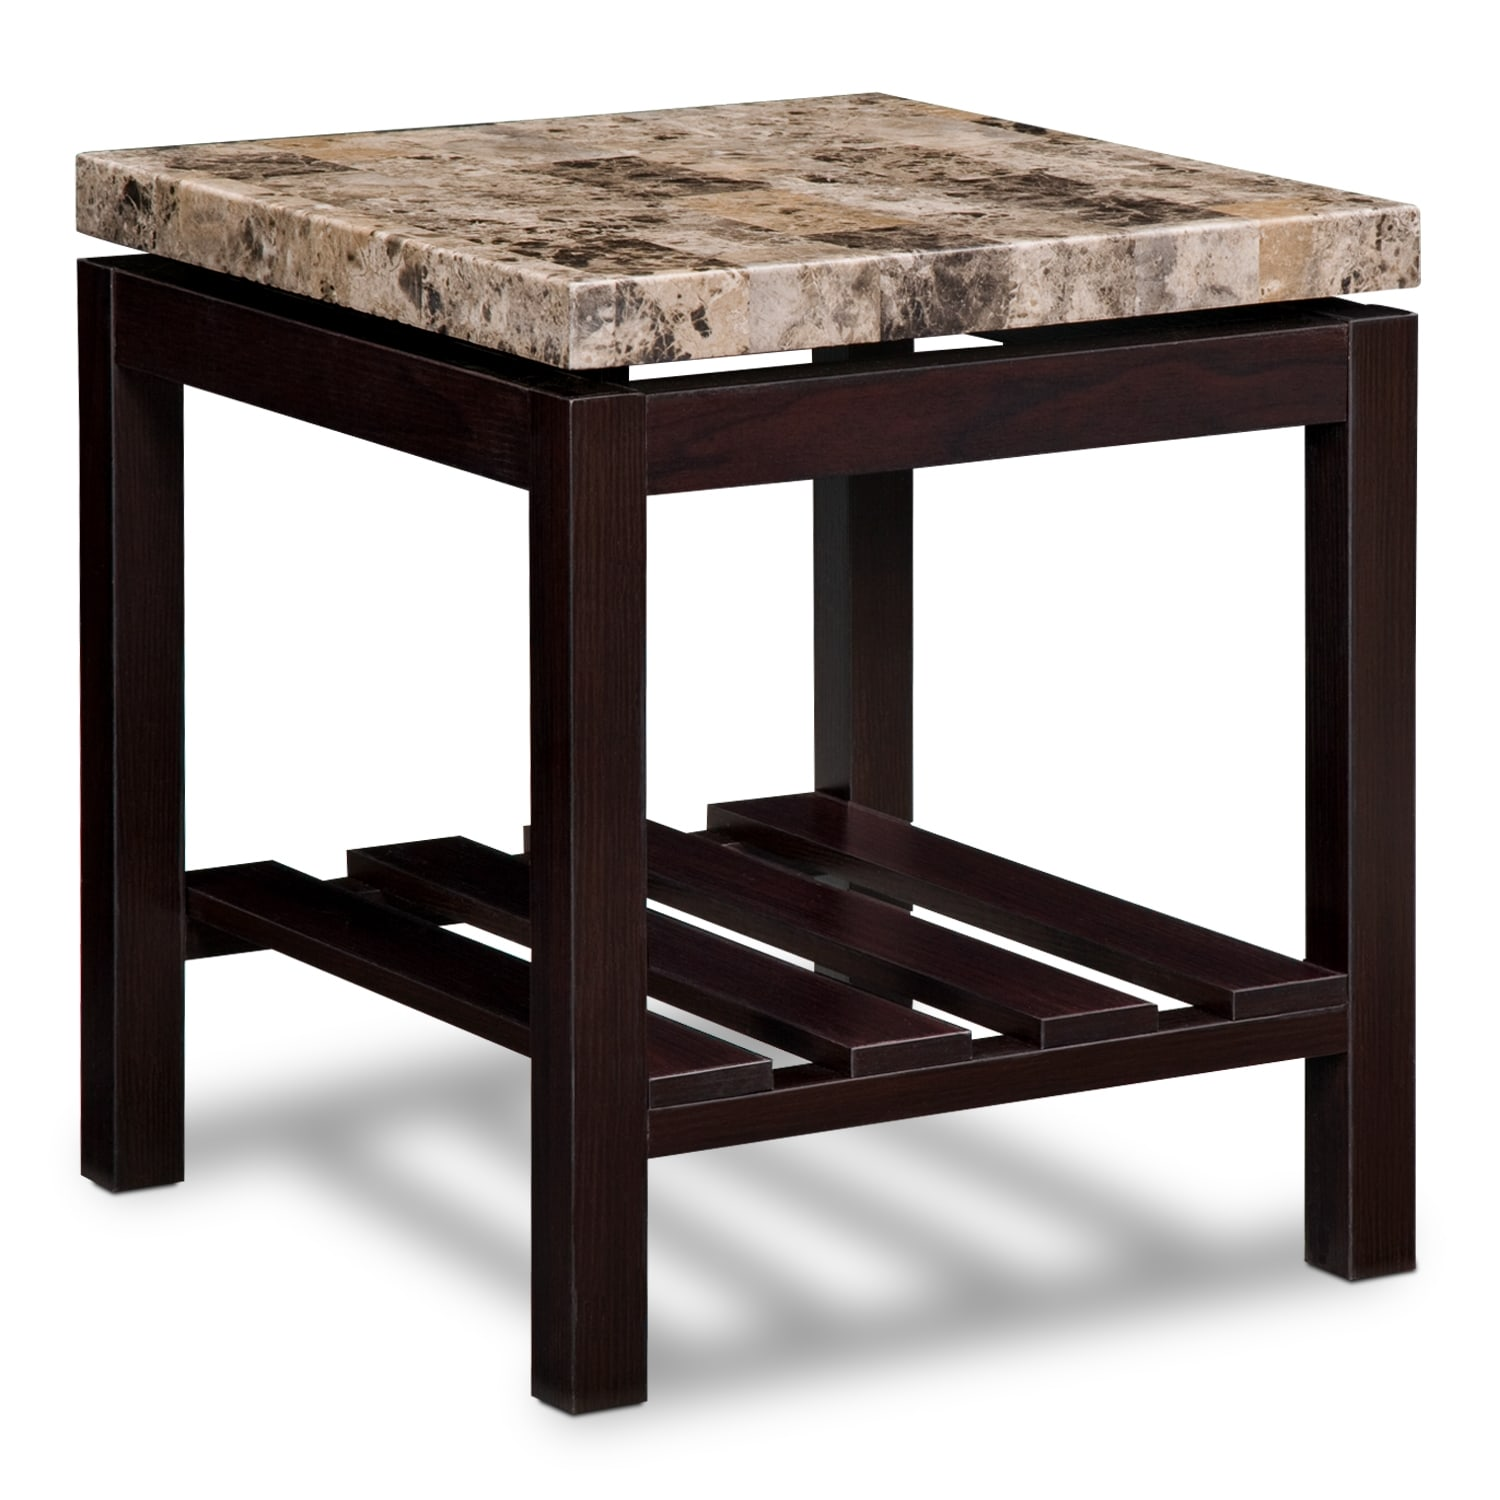 Audra occasional tables end table value city furniture for Occasional furniture